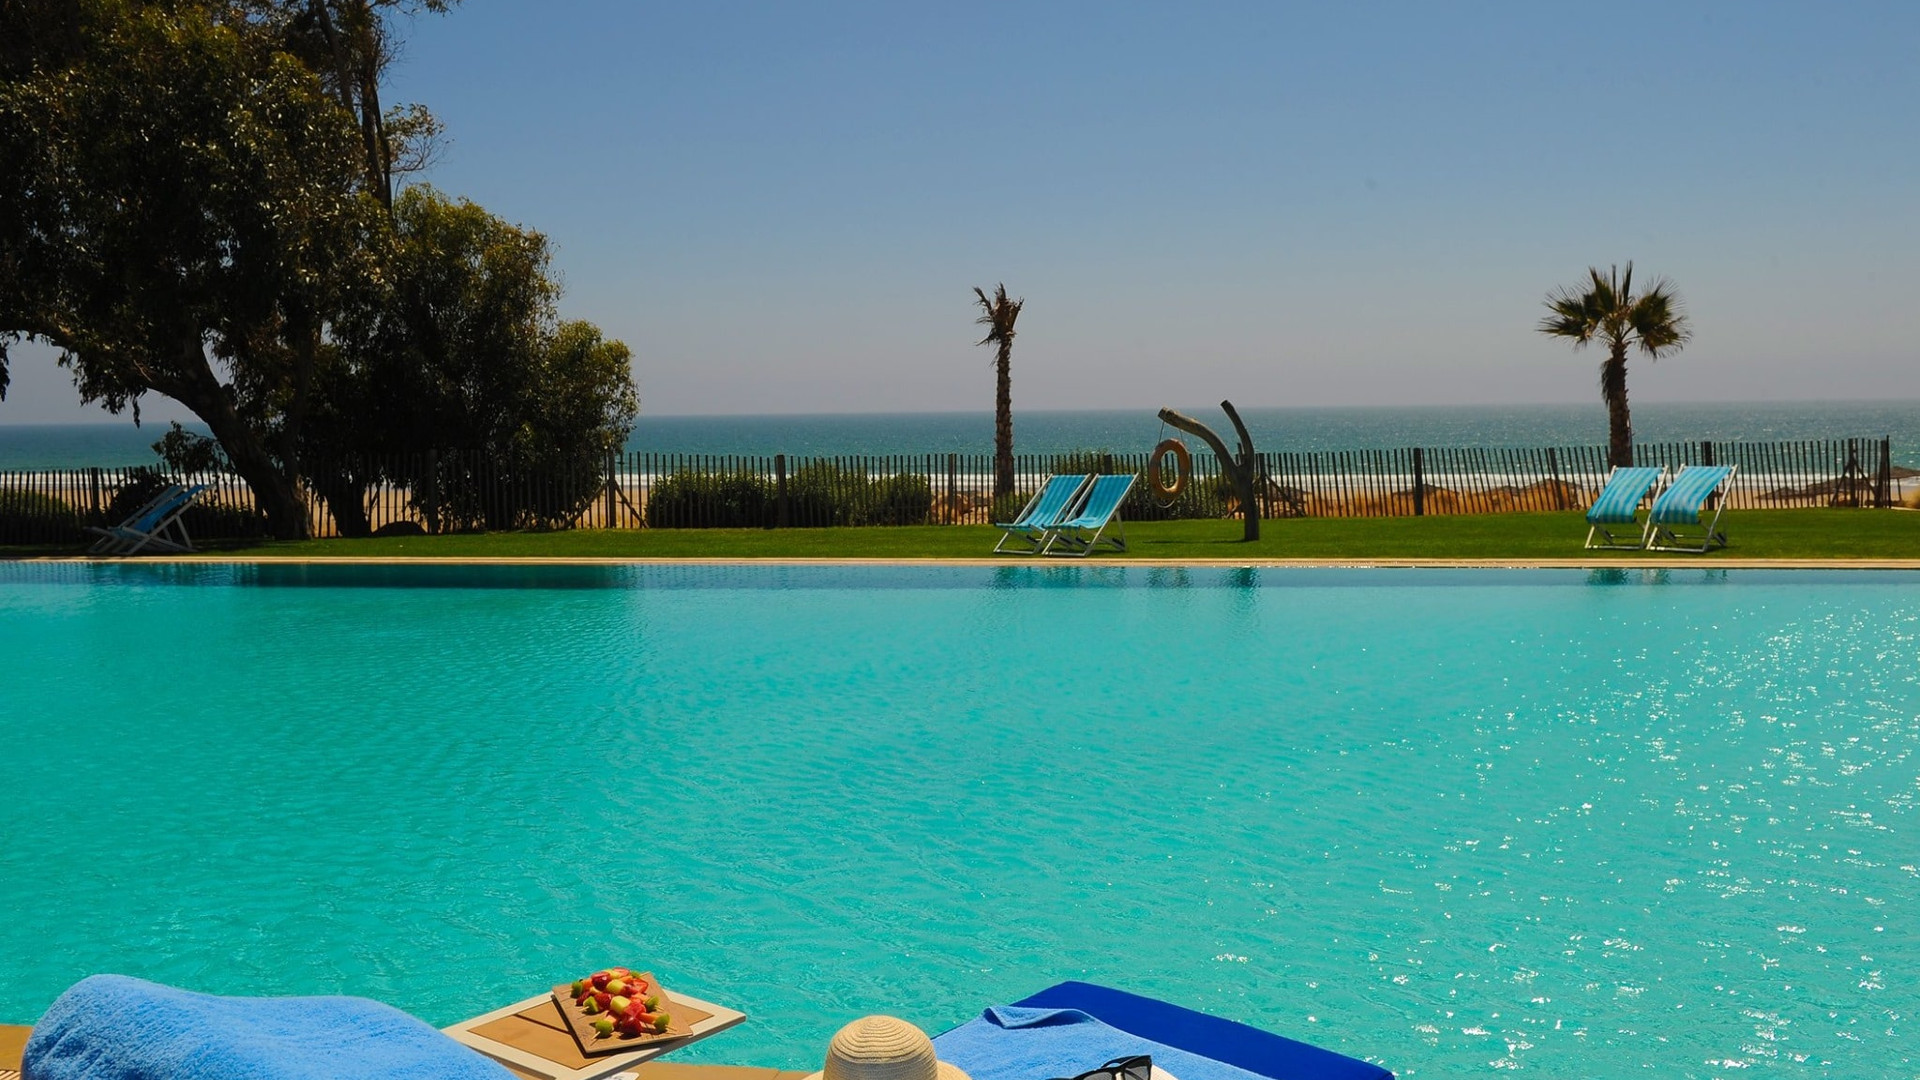 Sol House Taghazout Bay, Moroccolax-beach-pool-min.jpg